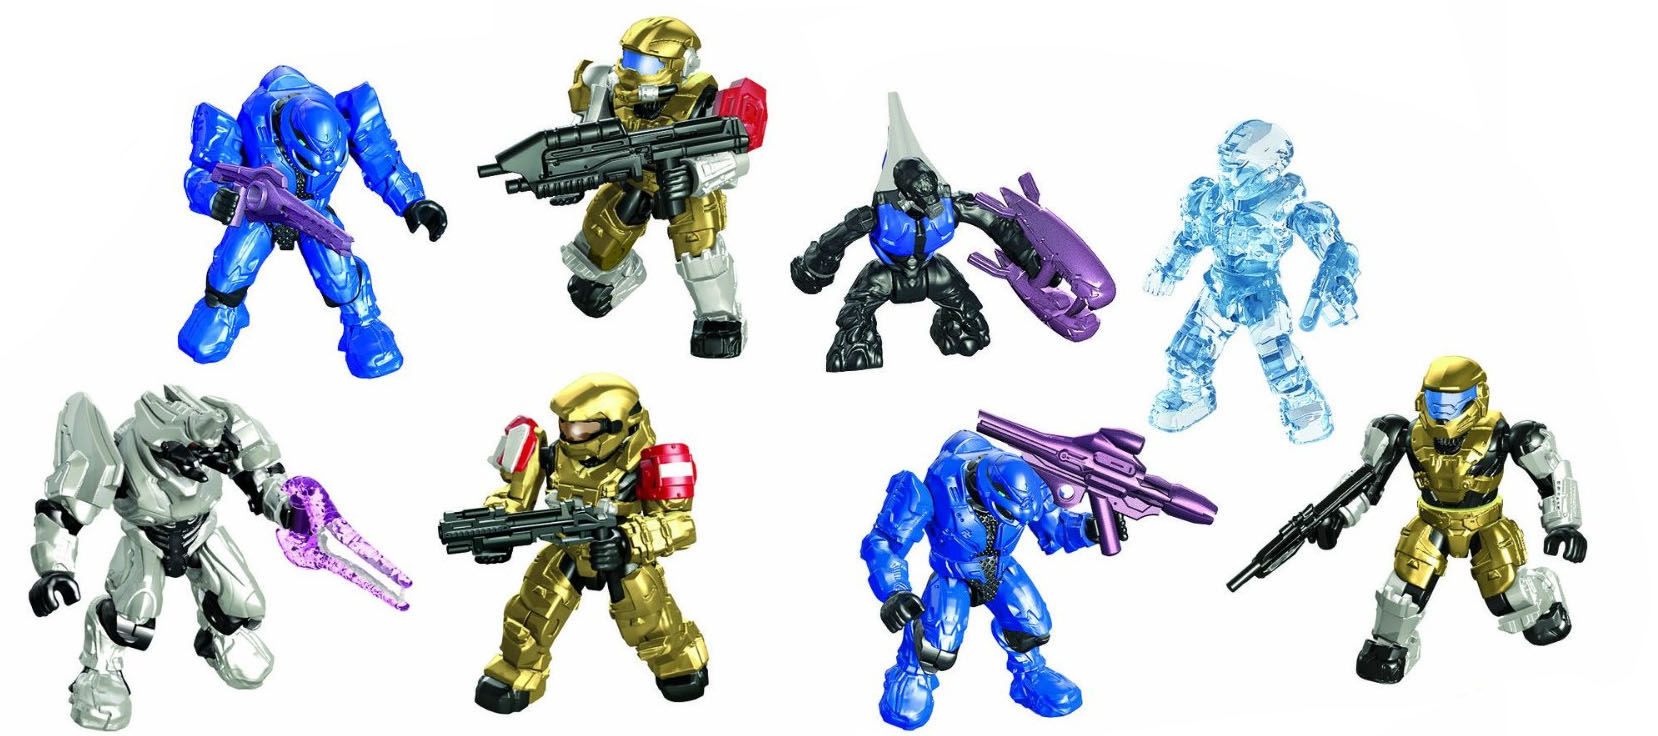 Halo Mega Bloks Collector's Edition Pack 97205 In Stores Now